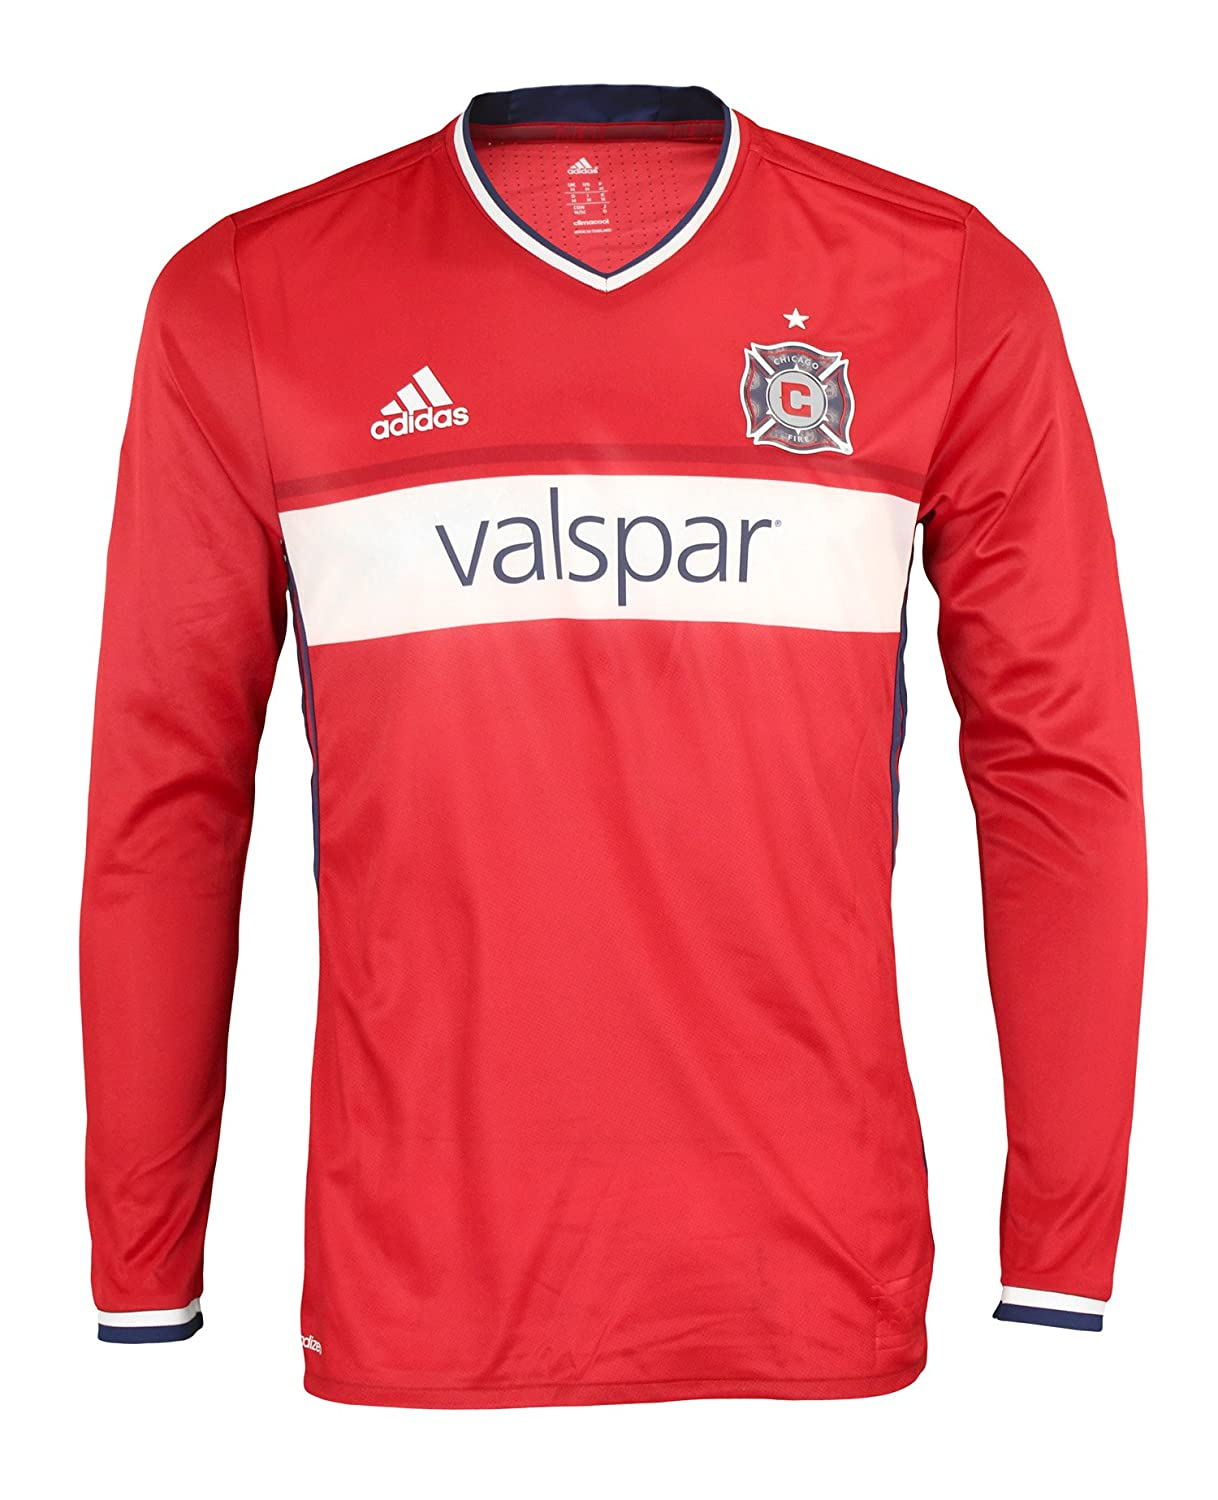 finest selection 4e8d1 09ee8 adidas MLS Soccer Chicago Fire Men's Long Sleeve Authentic Jersey, Red